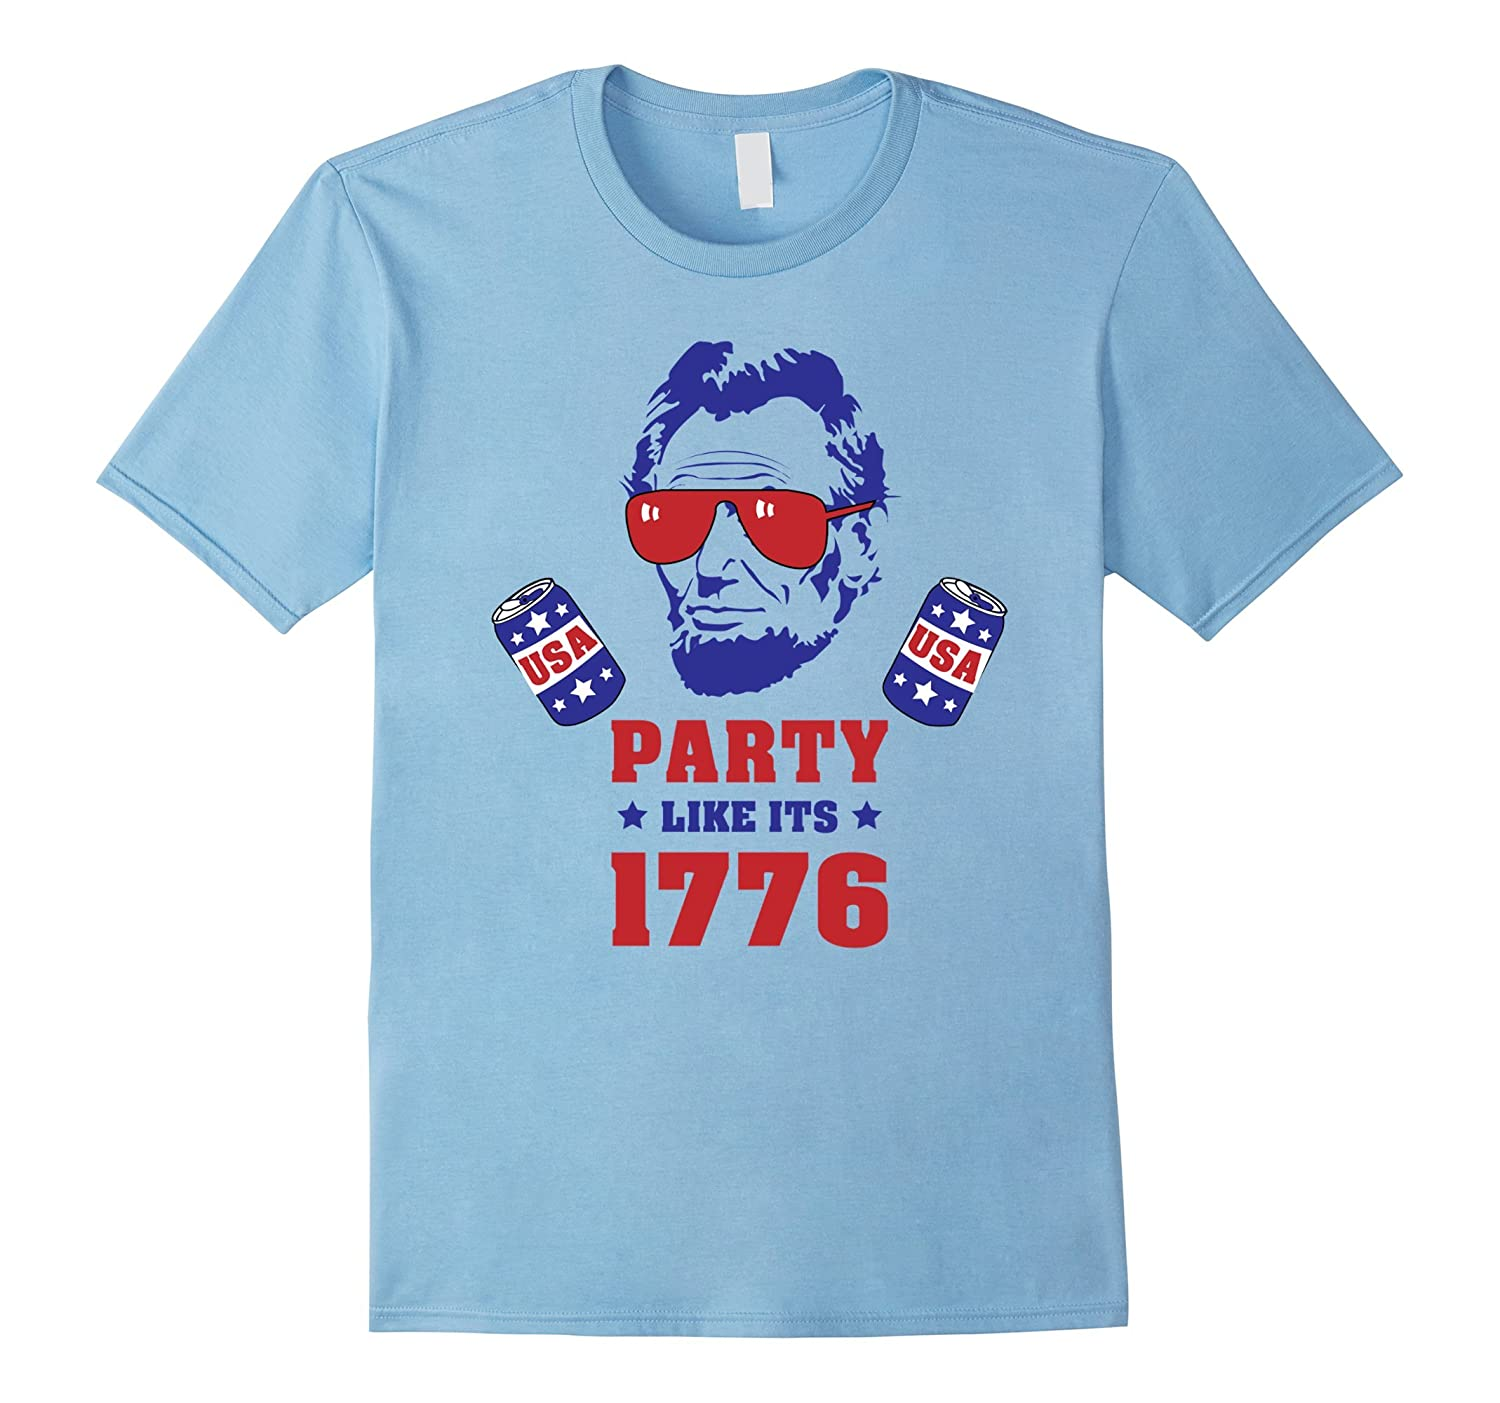 4th of July Shirt Funny Presidents Patriotic Shirt-PL